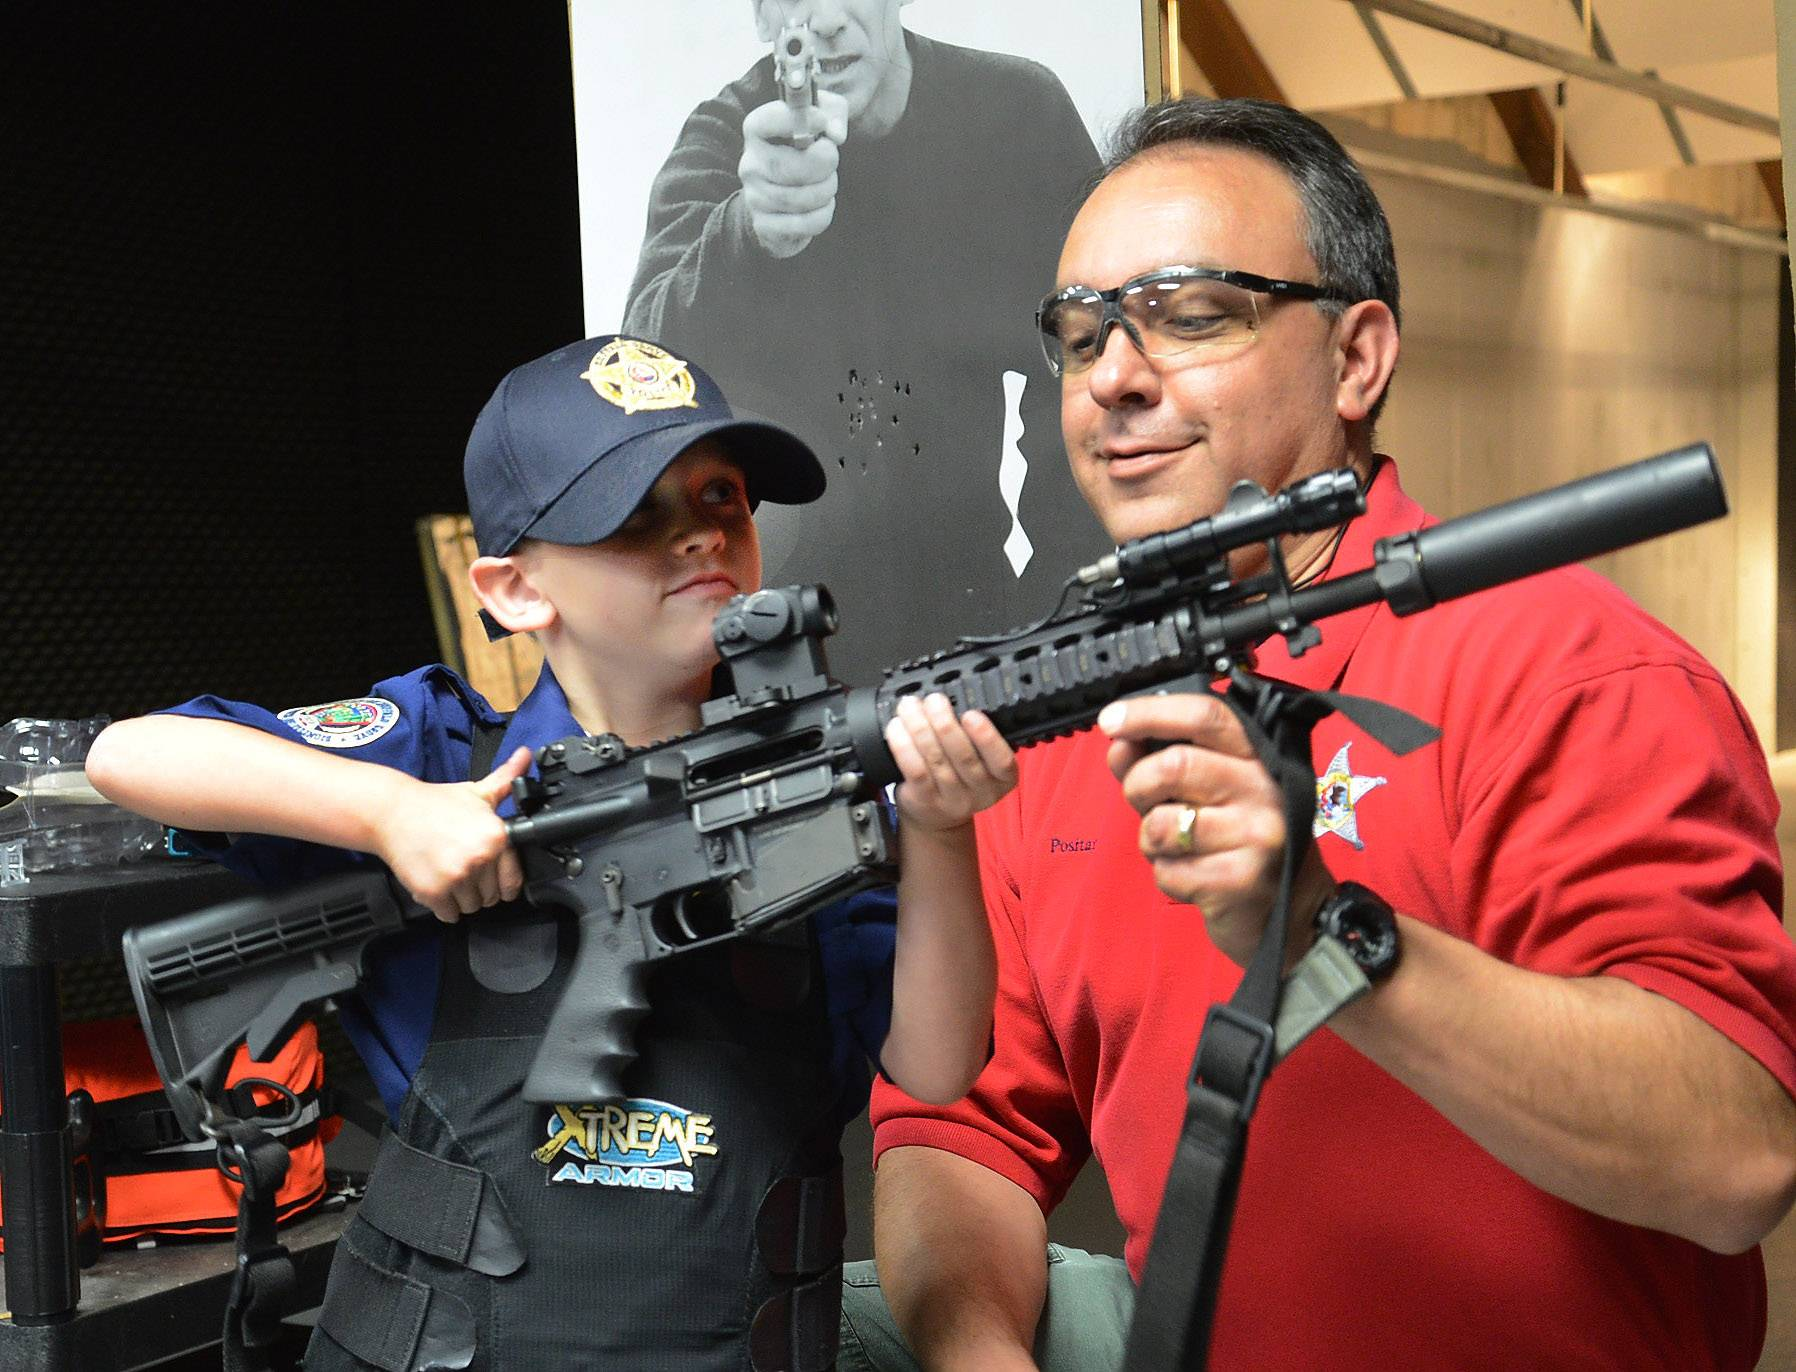 Adam Brodersen gets a lesson on how to shoot a AR15 patrol rifle from firearms instructor Sgt. Vince Positano at the Buffalo Grove police department.